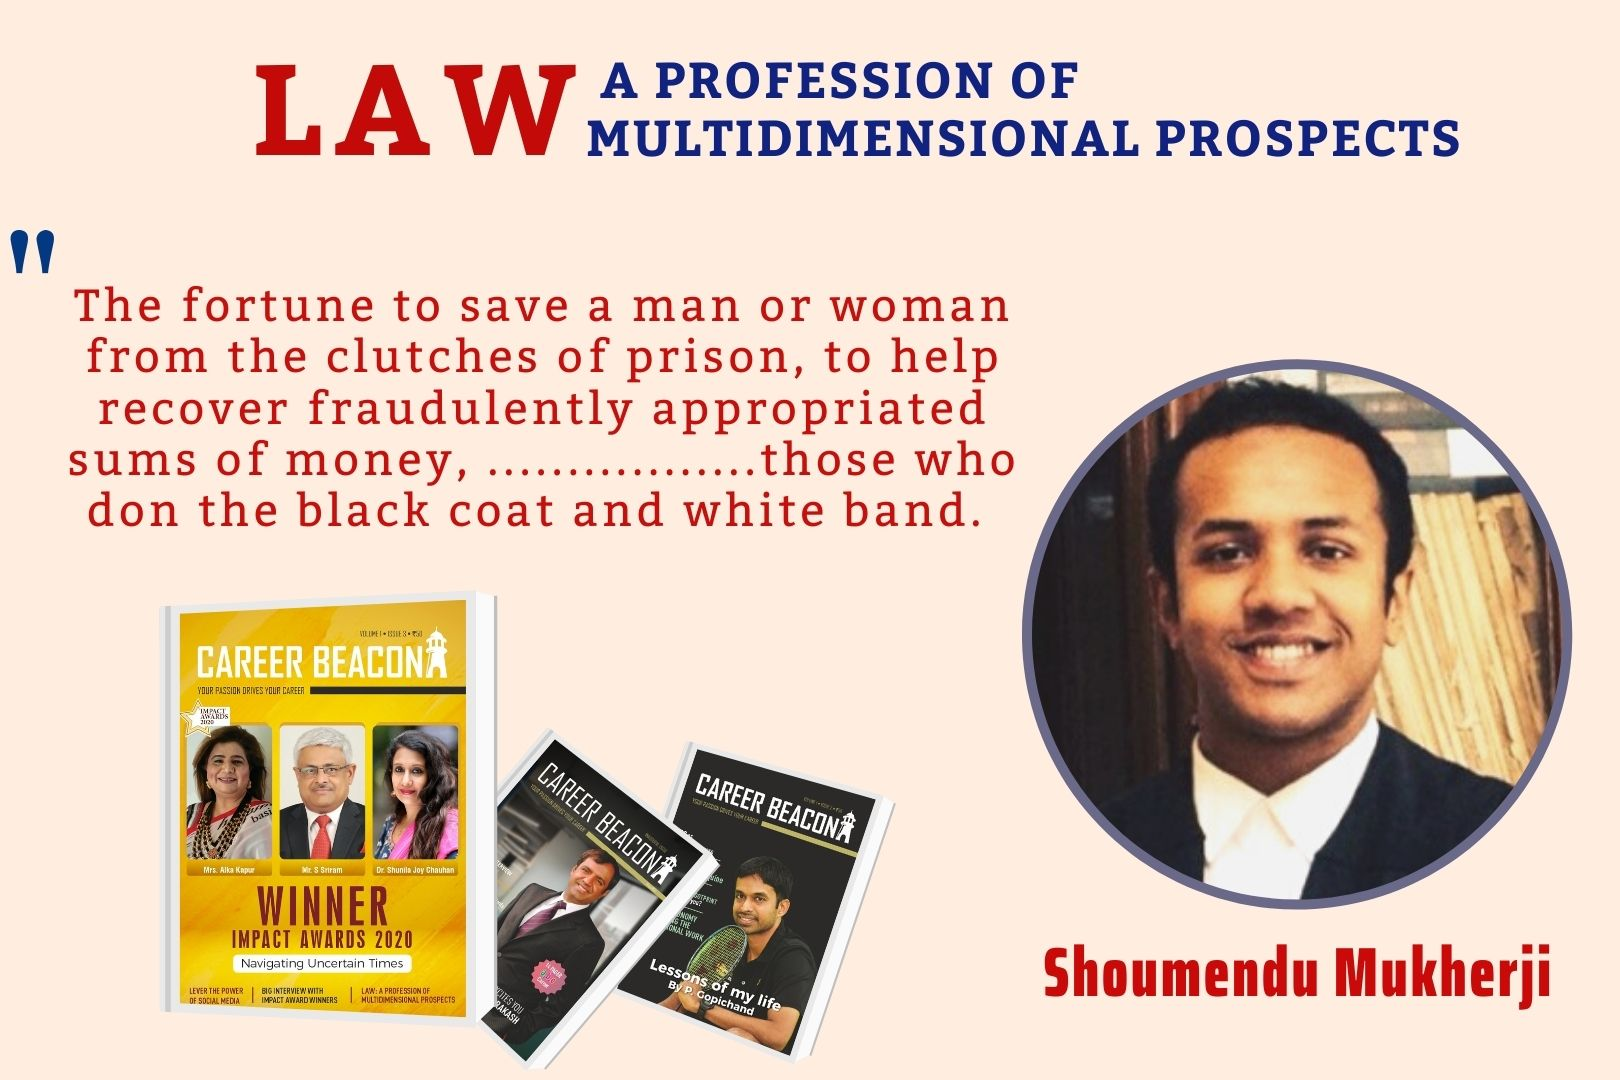 LAW: A Profession of Multidimensional Prospects